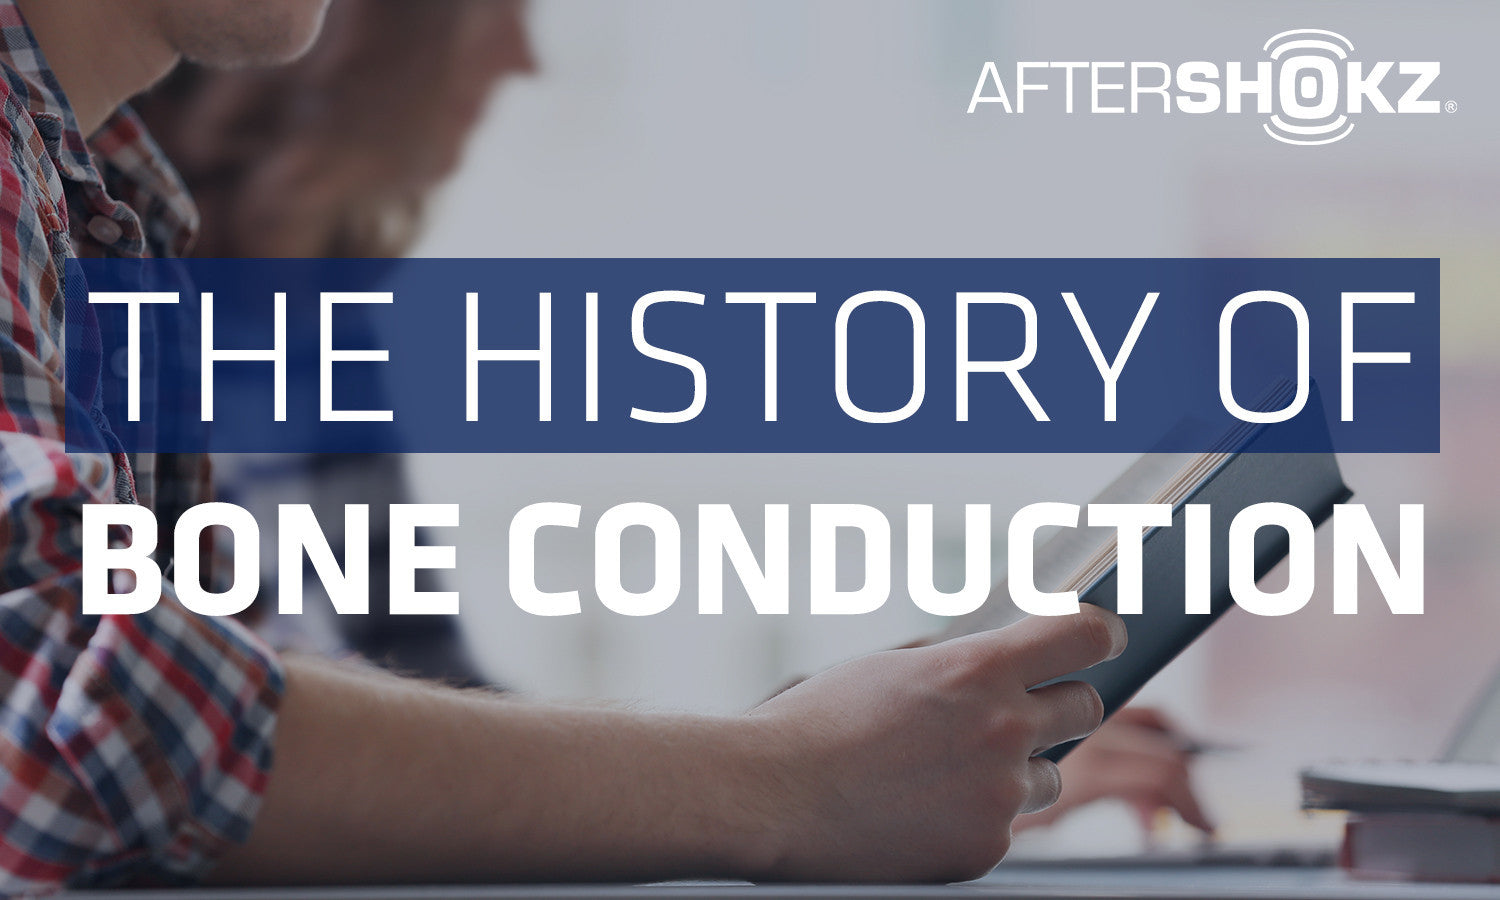 The History of Bone Conduction